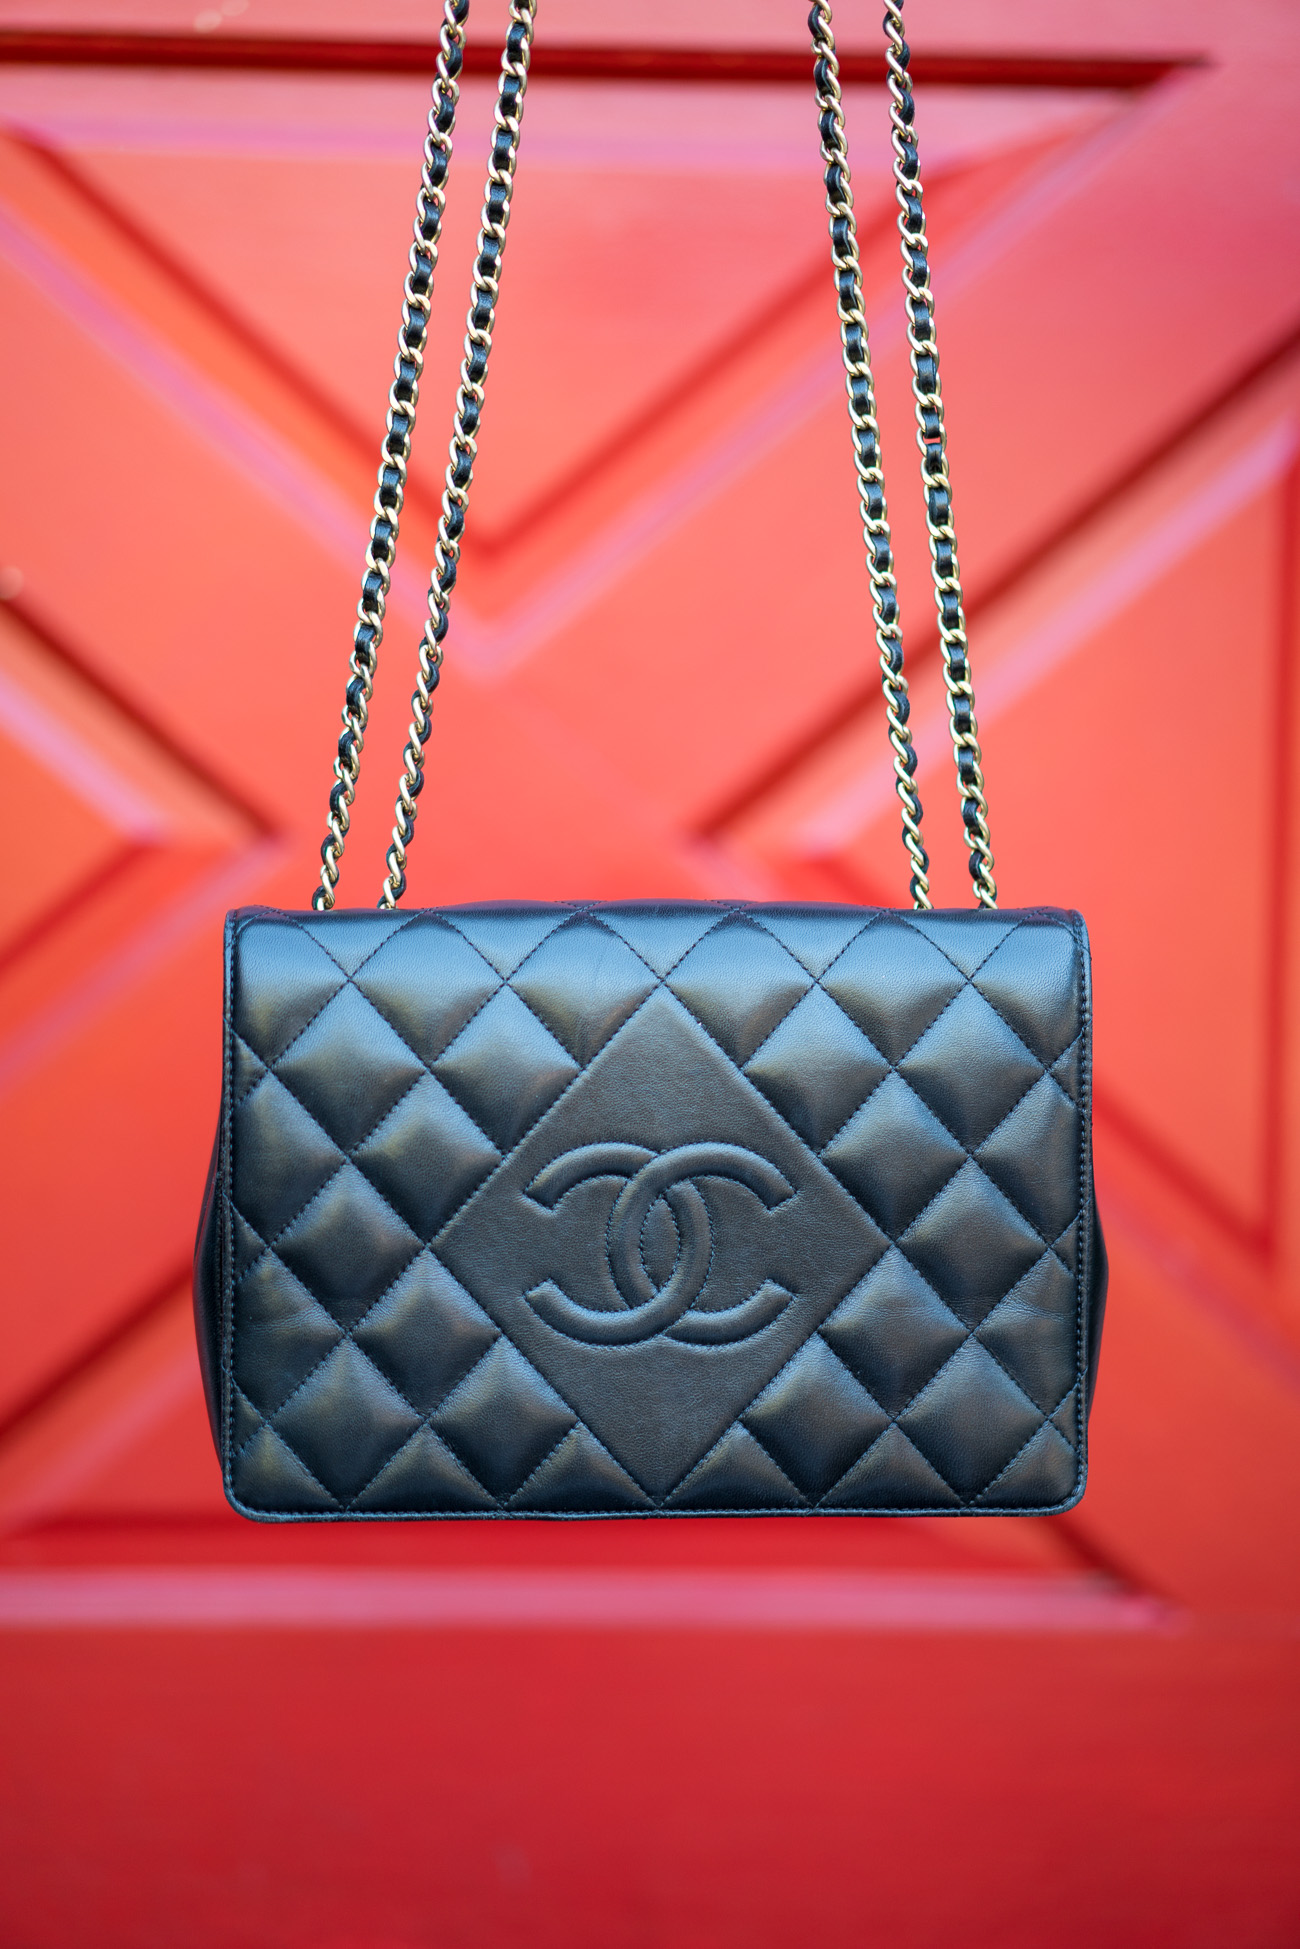 Chanel Diamond CC Flap Bag Angela Lanter Hello Gorgeous